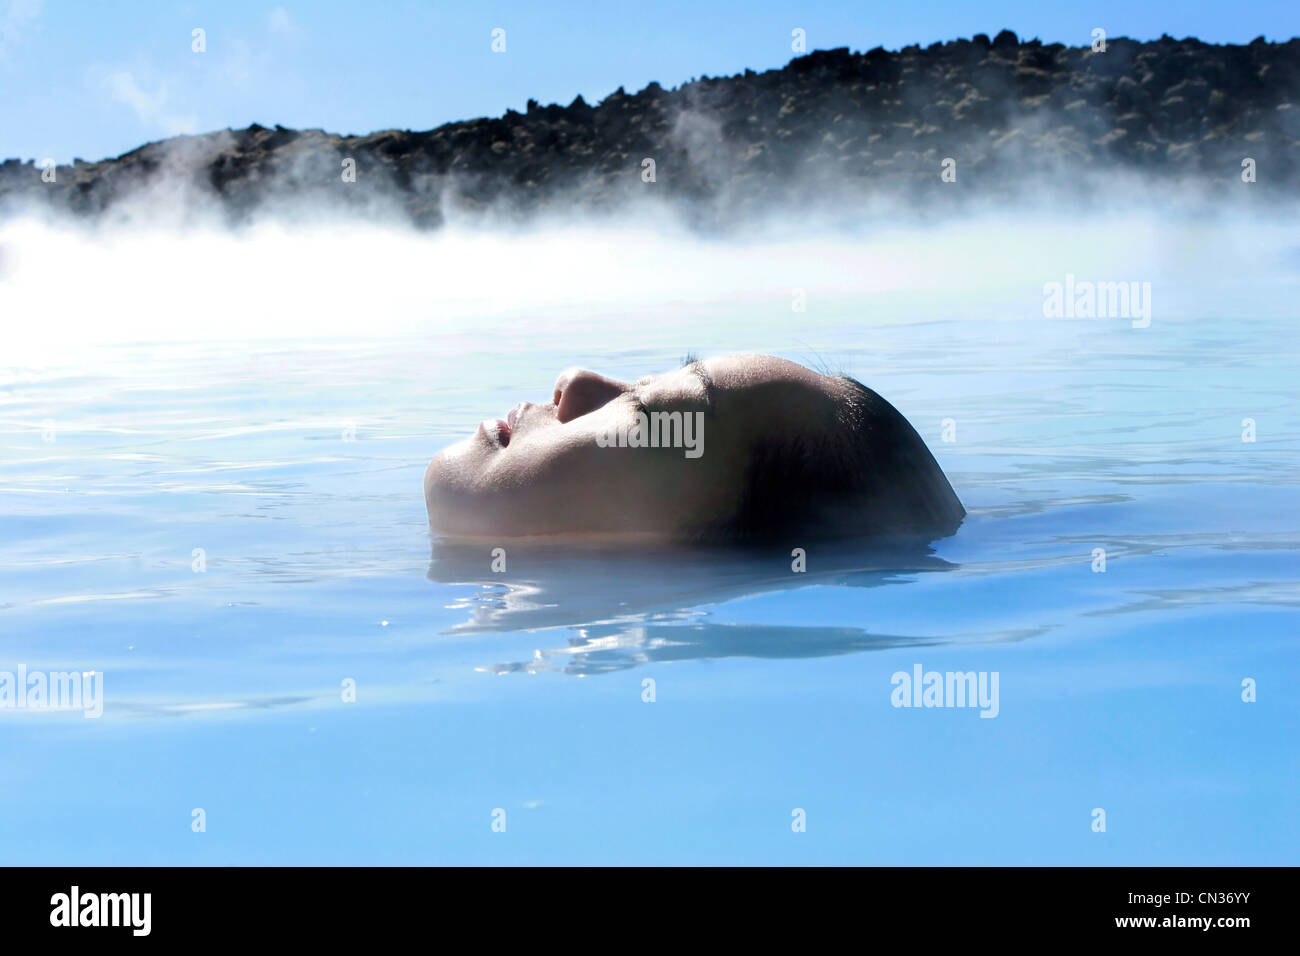 Woman in geothermal pool, Iceland - Stock Image